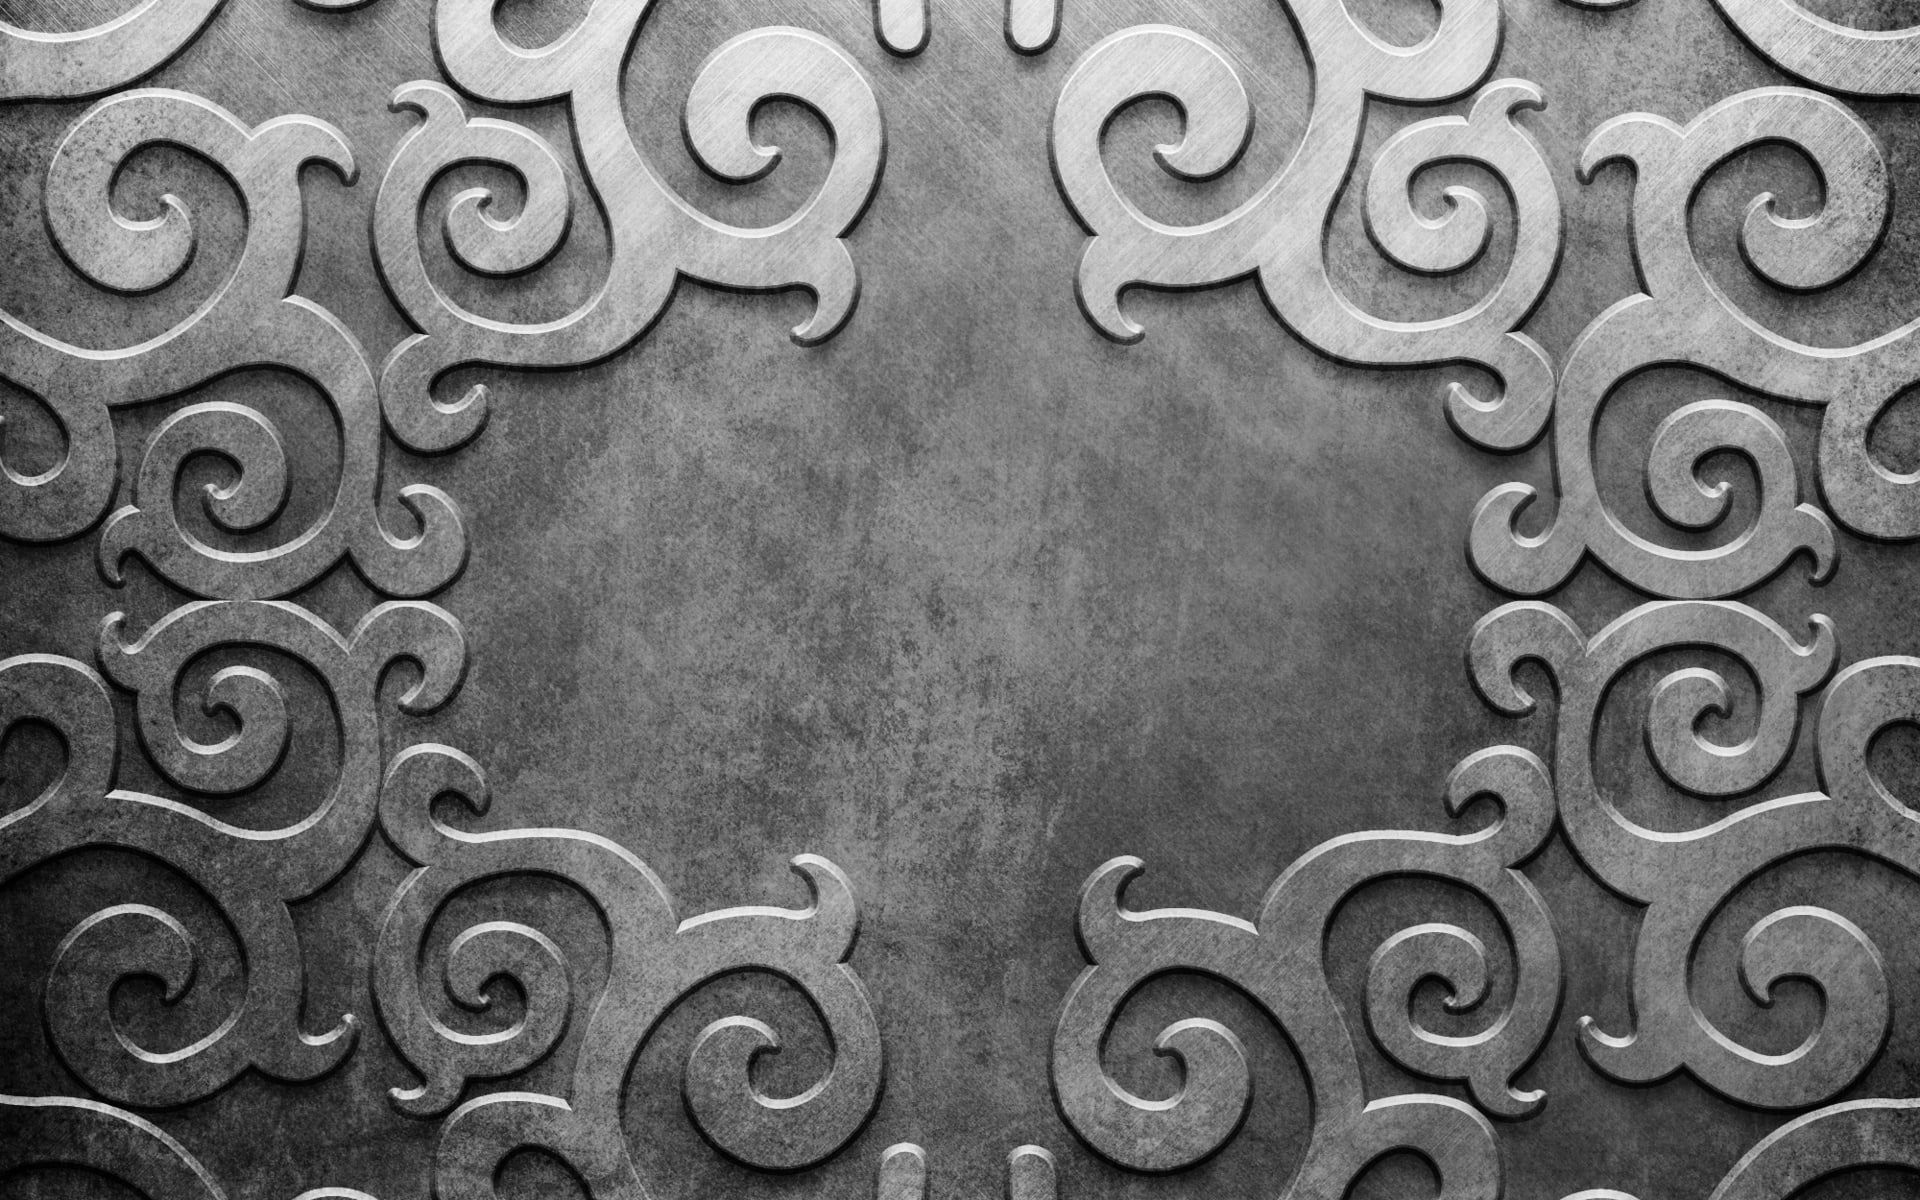 metal patterns lines silver background 1080P